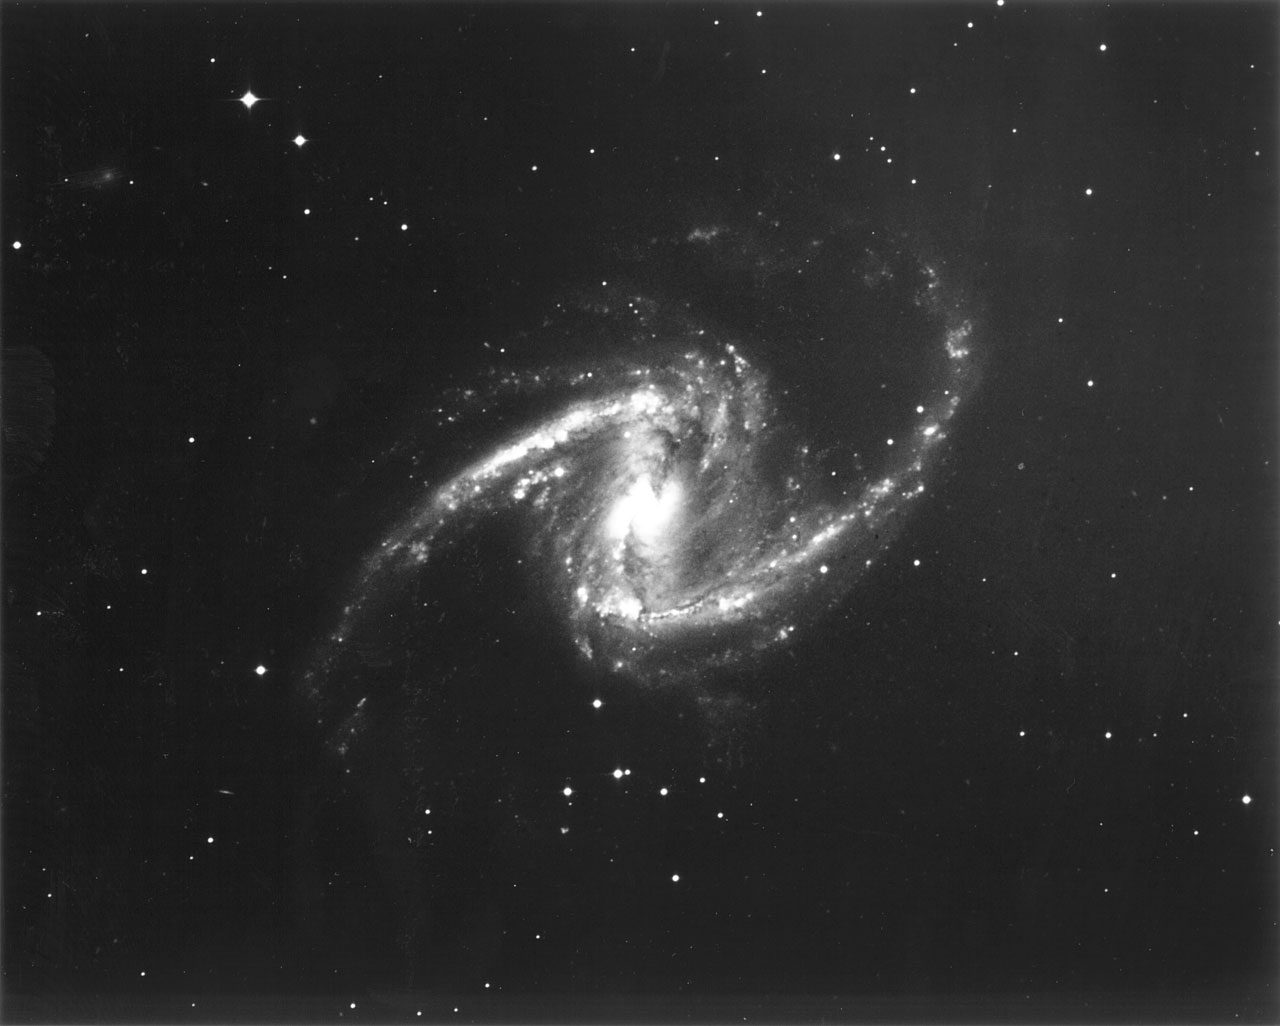 Galaxy ngc 1365 galaxy ngc 1365 this black and white photograph